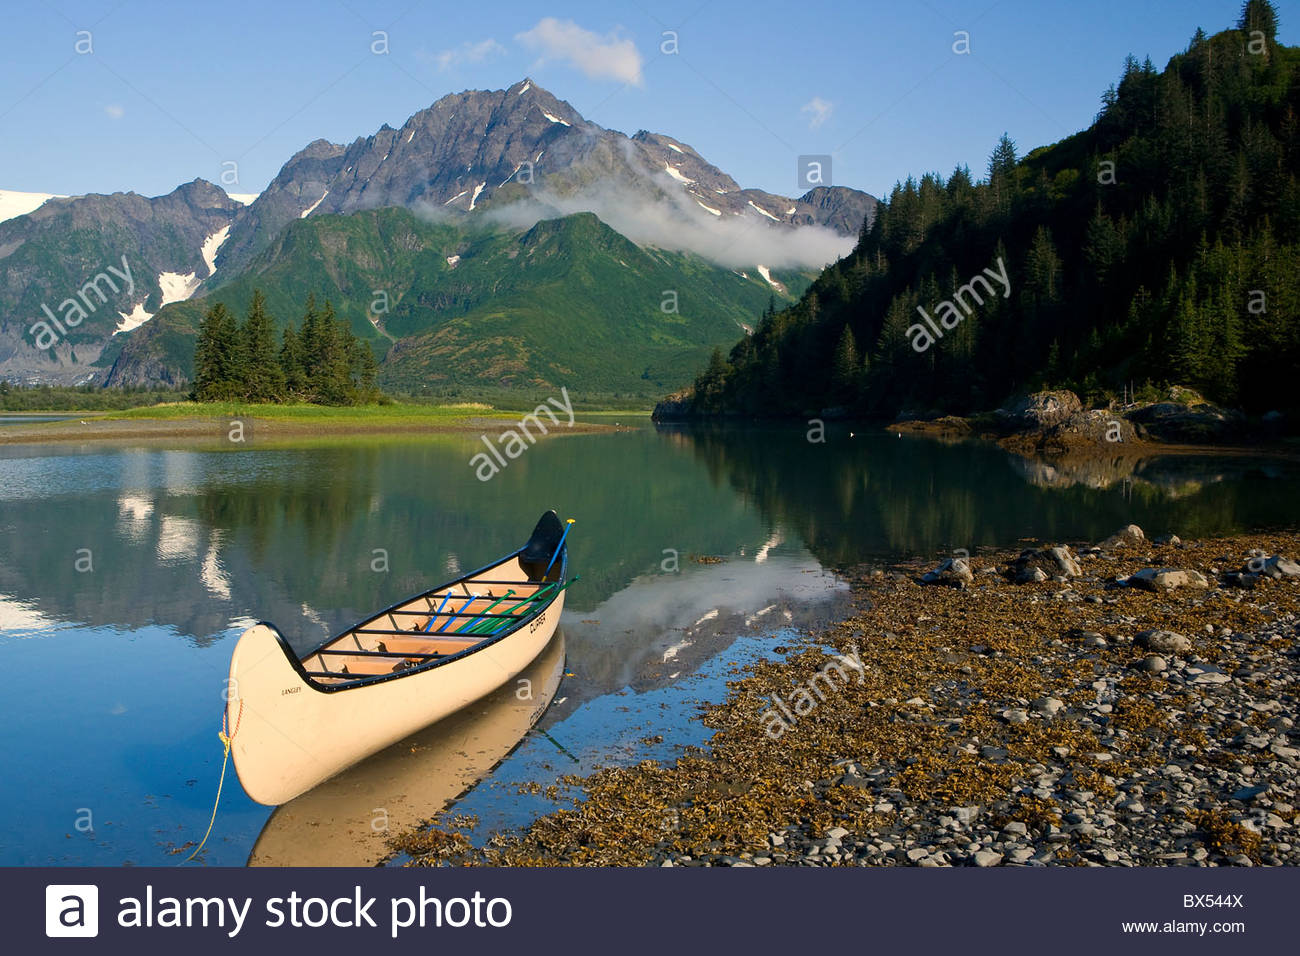 A canoe sits in waiting on a sunny day on the Lower Pedersen Lagoon, Kenai Fjords National Park. - Stock Image